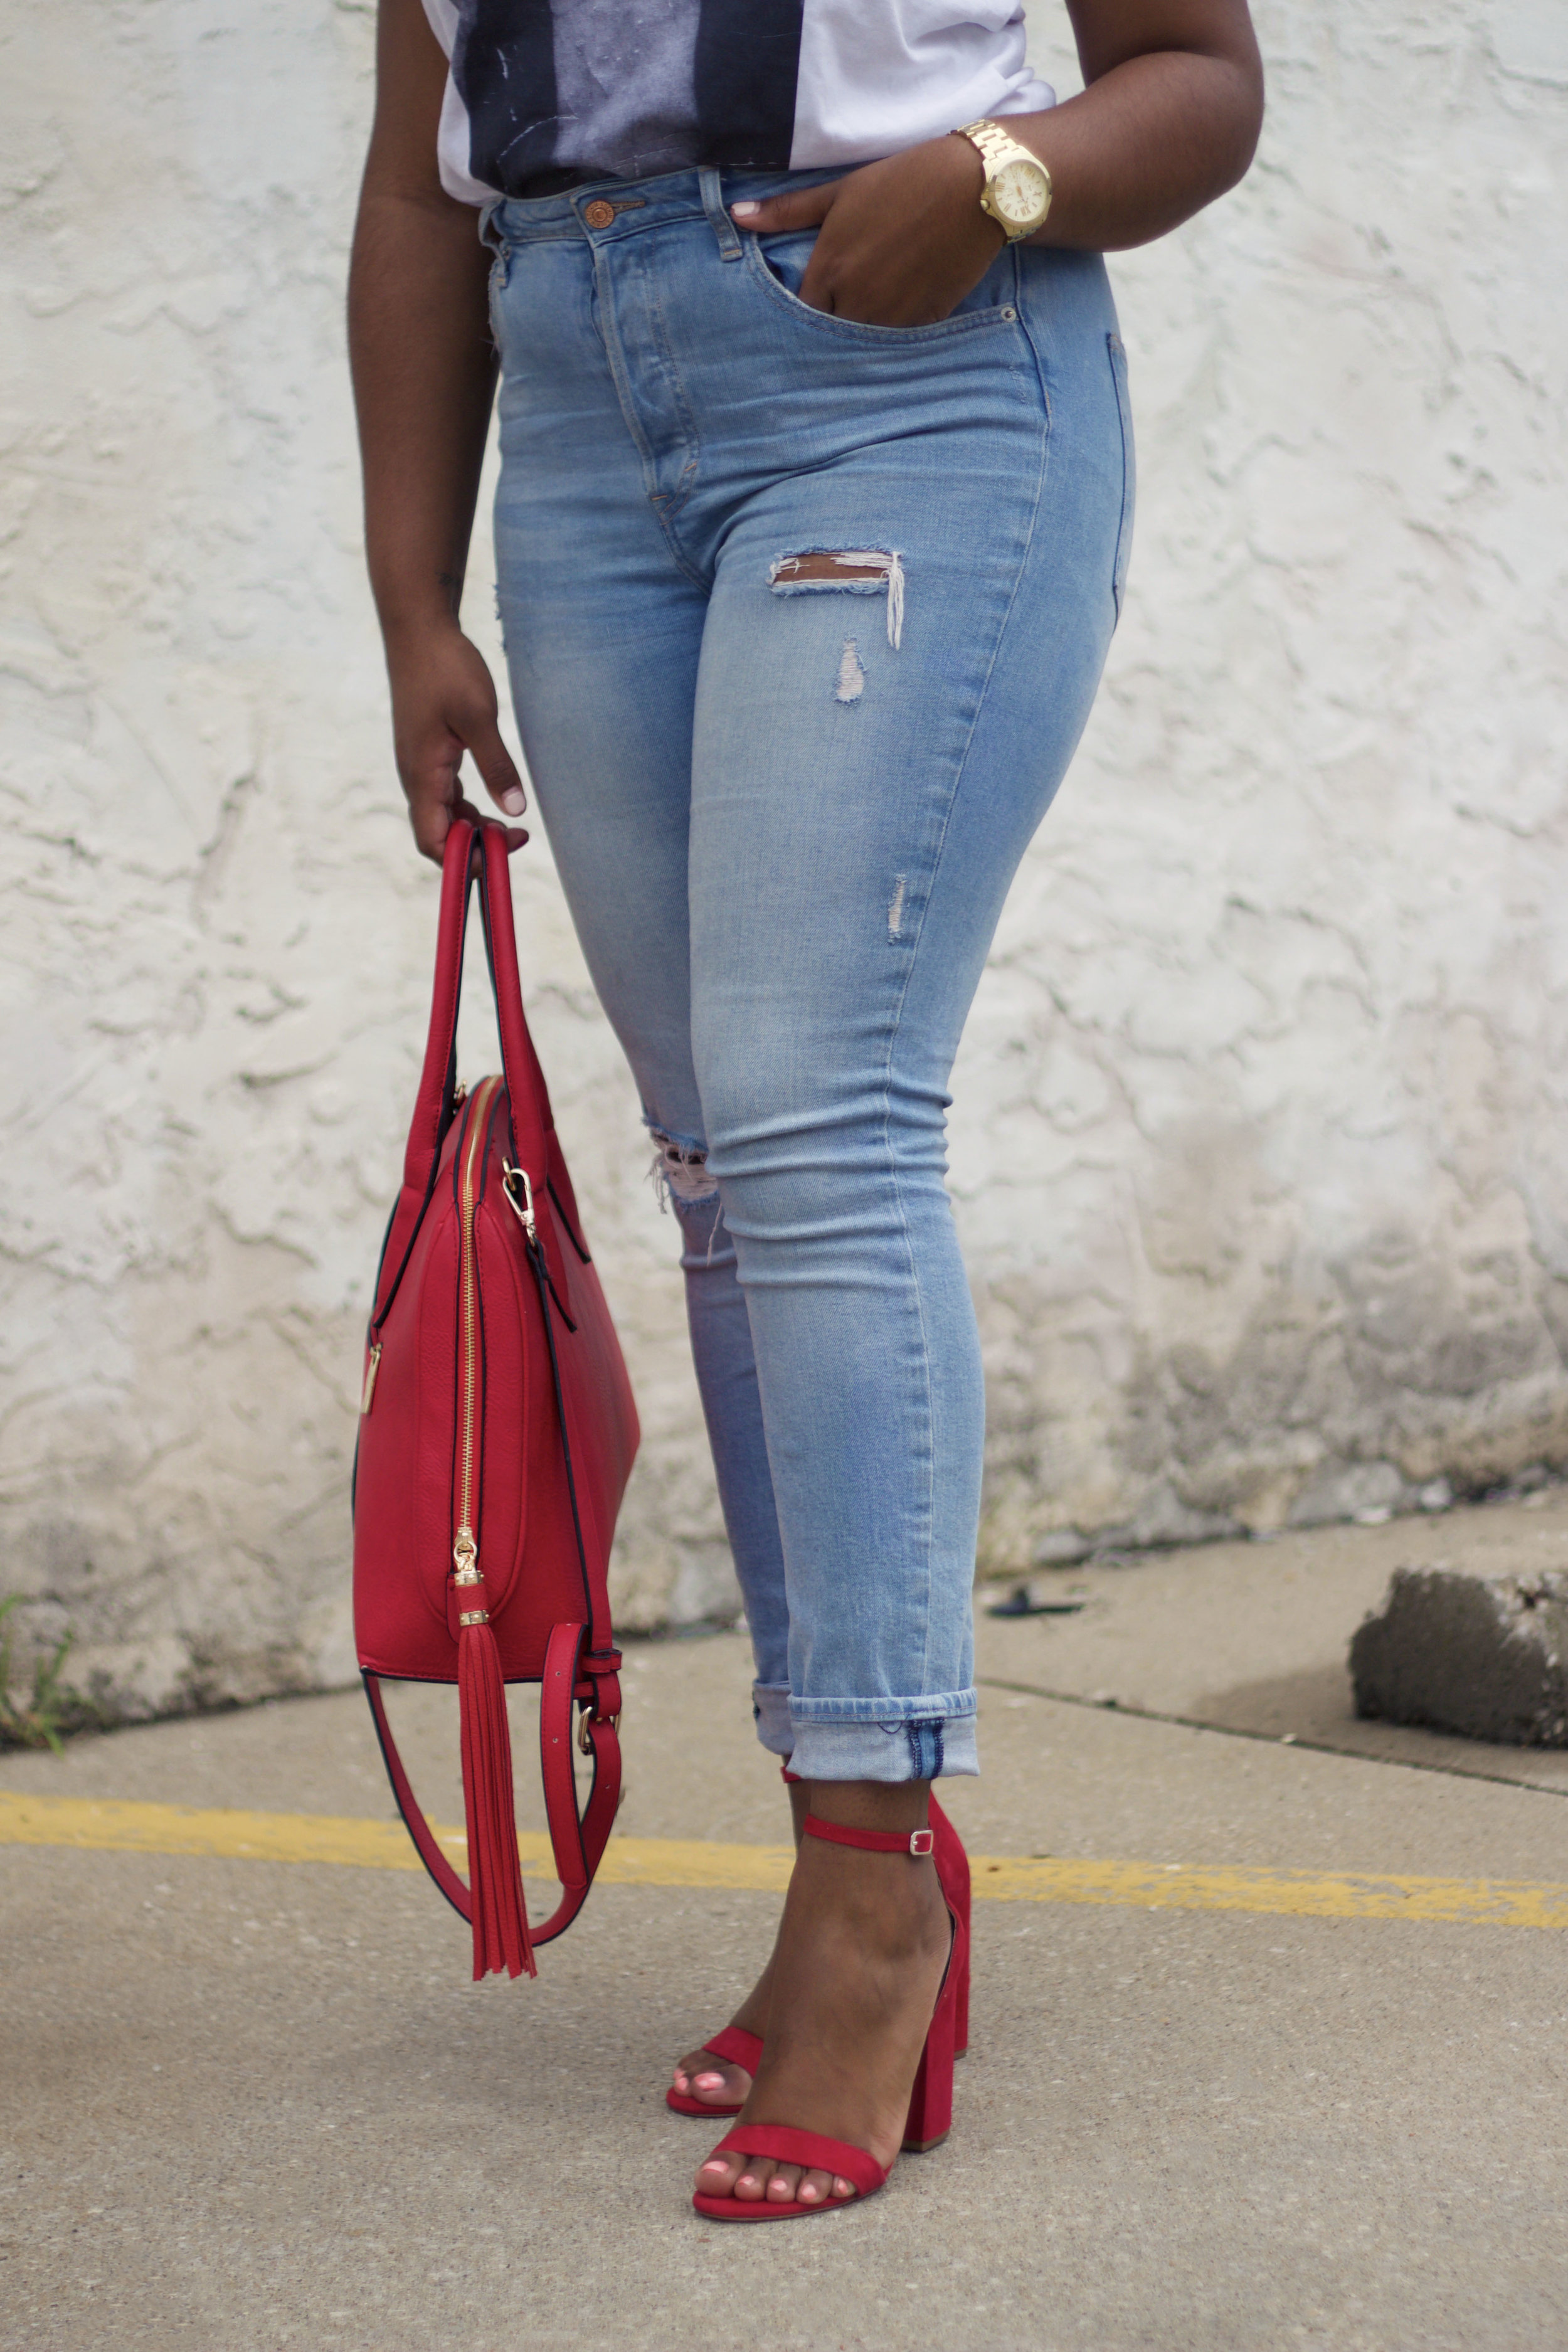 Red heels with a red bag on jasminediane.com